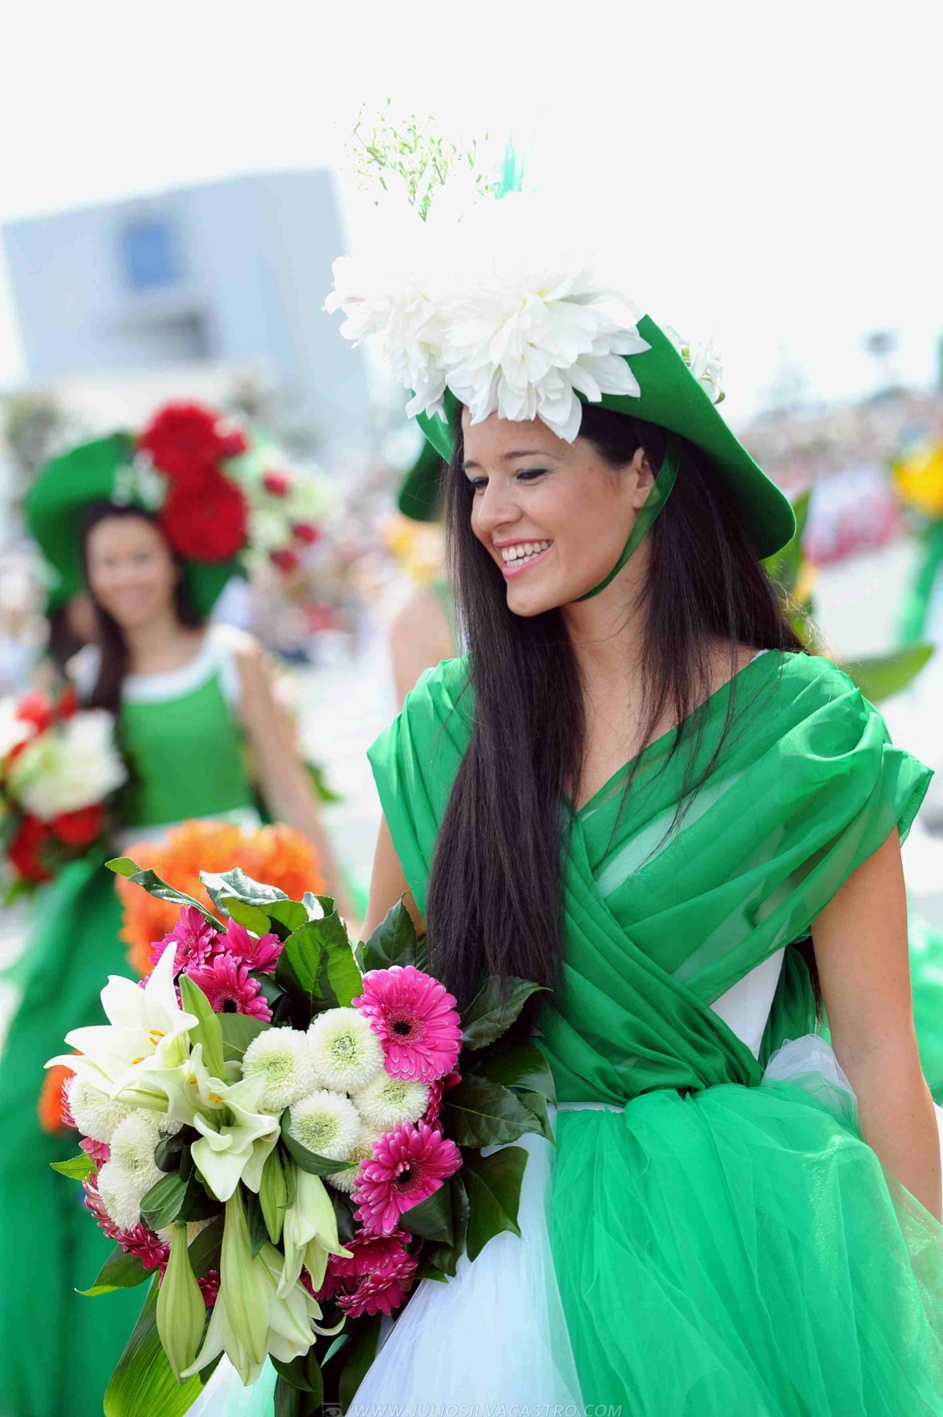 Pictures From Madeira Flower Festival 10